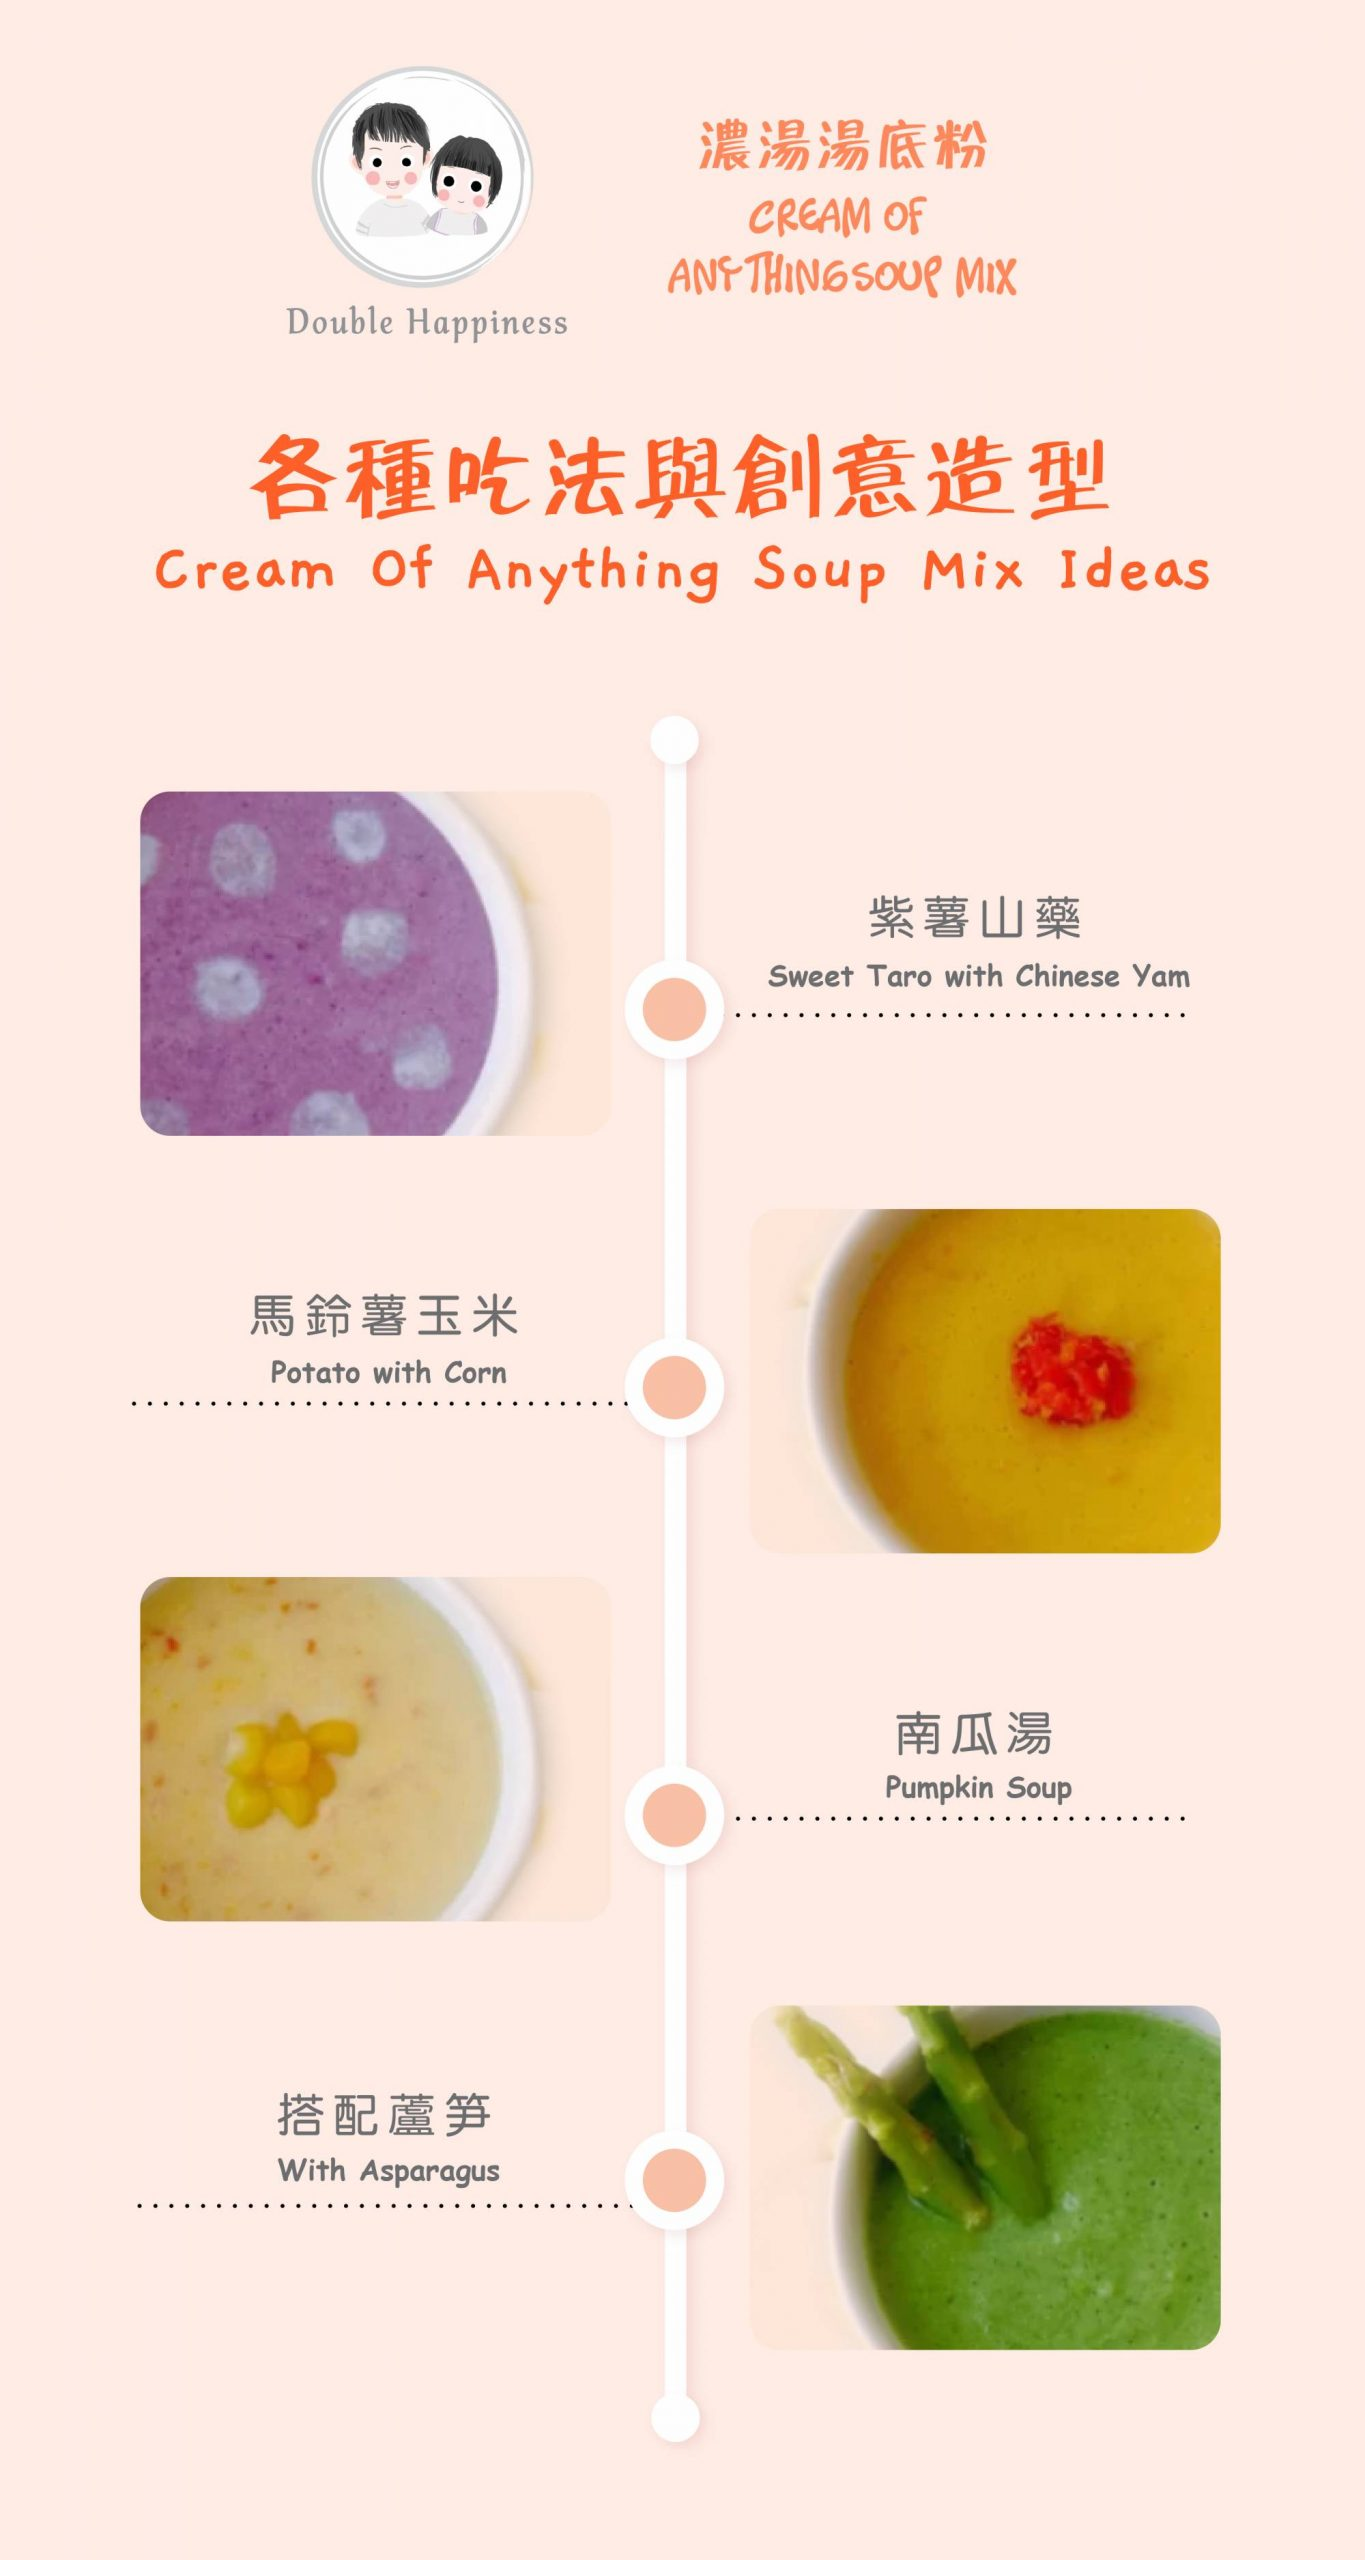 Cream of anything soup cooking tips